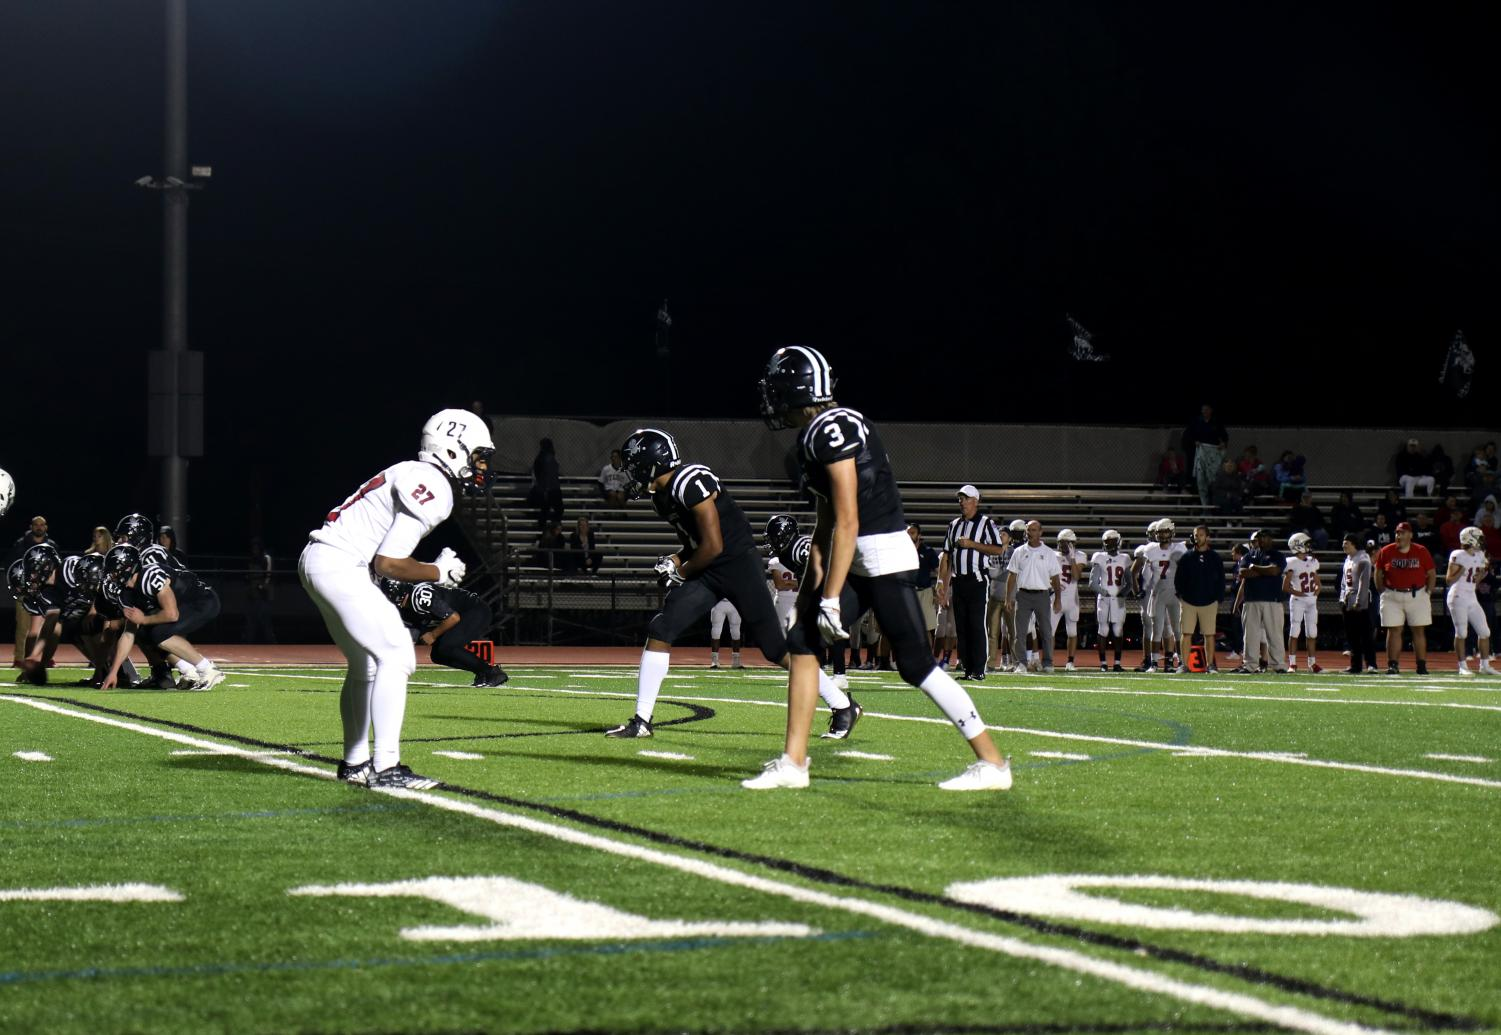 Marsean+Fischer+and+Jack+Roe+prepare+on+the+10+yard+line+for+the+next+play+at+the+2018+Lafayette+Homecoming+game.